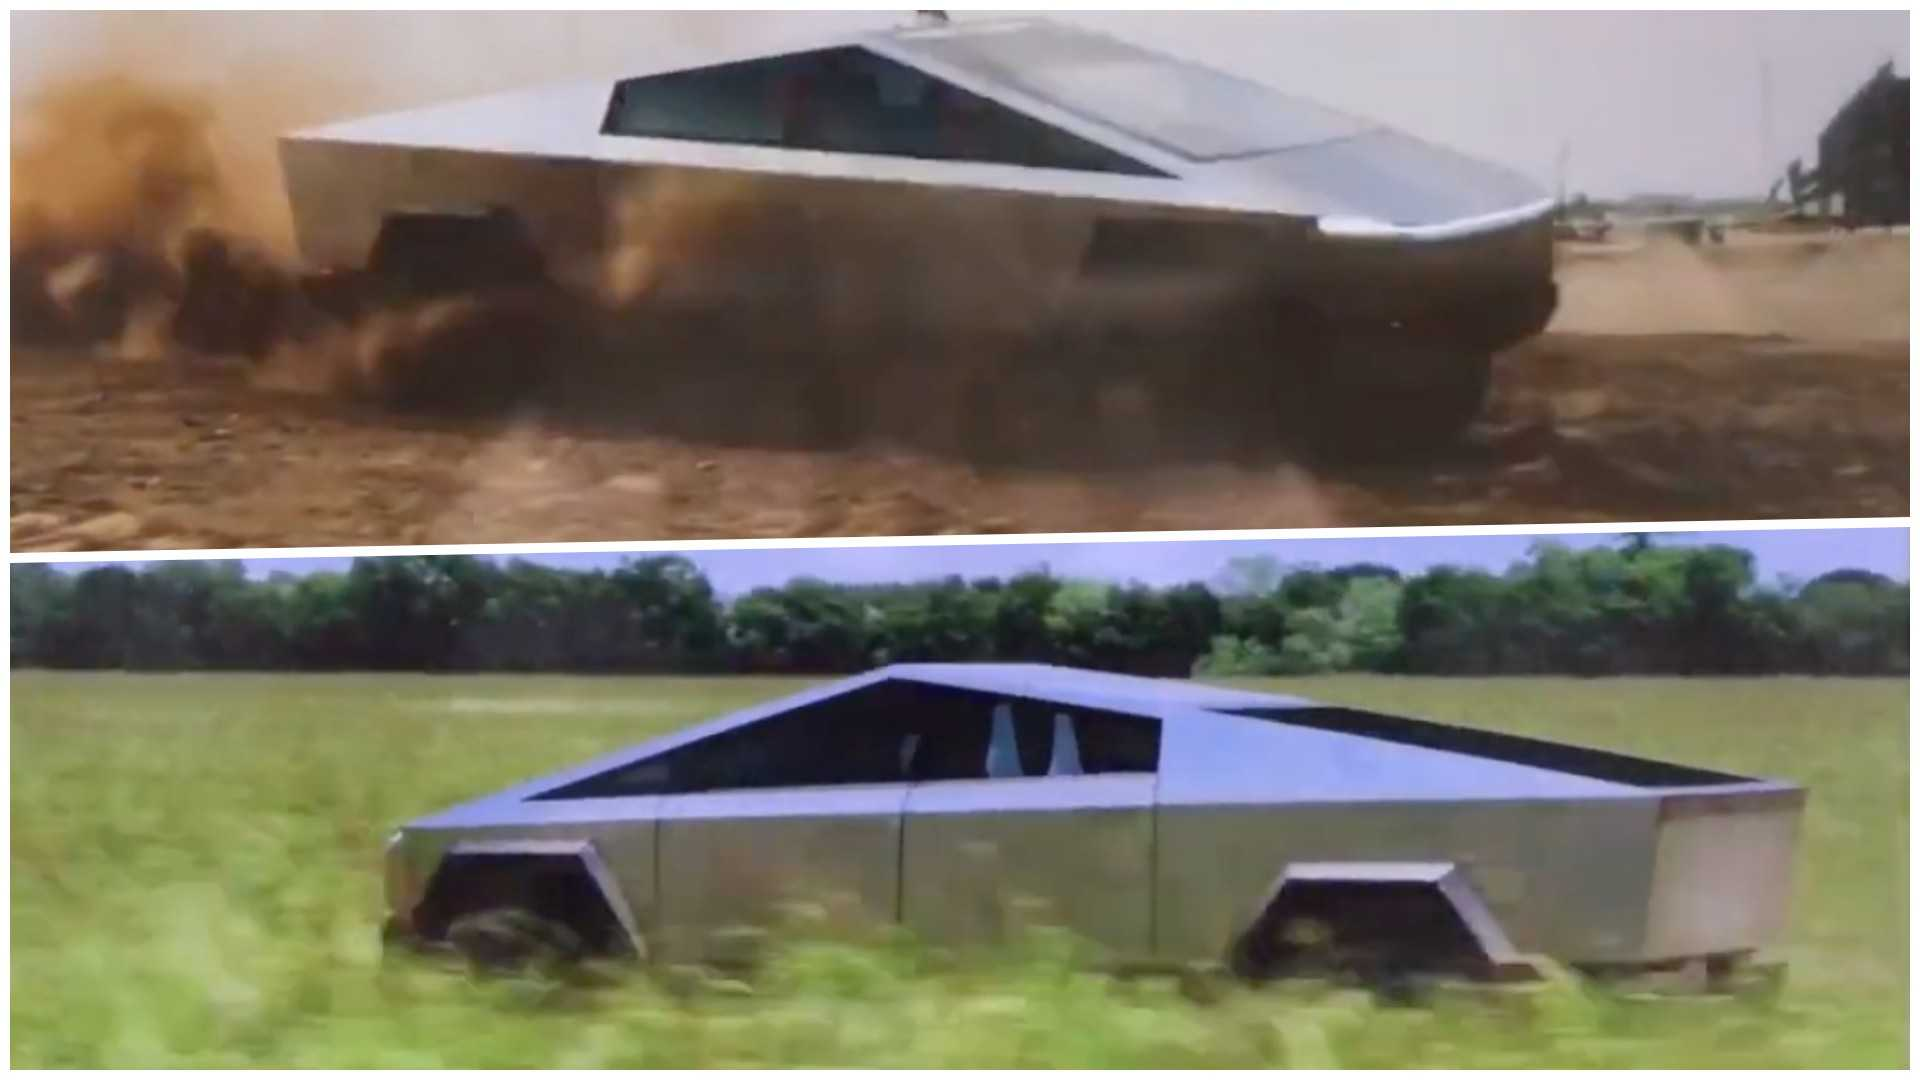 Tesla Cybertruck Looks Out Of This World In Fresh Teaser Video